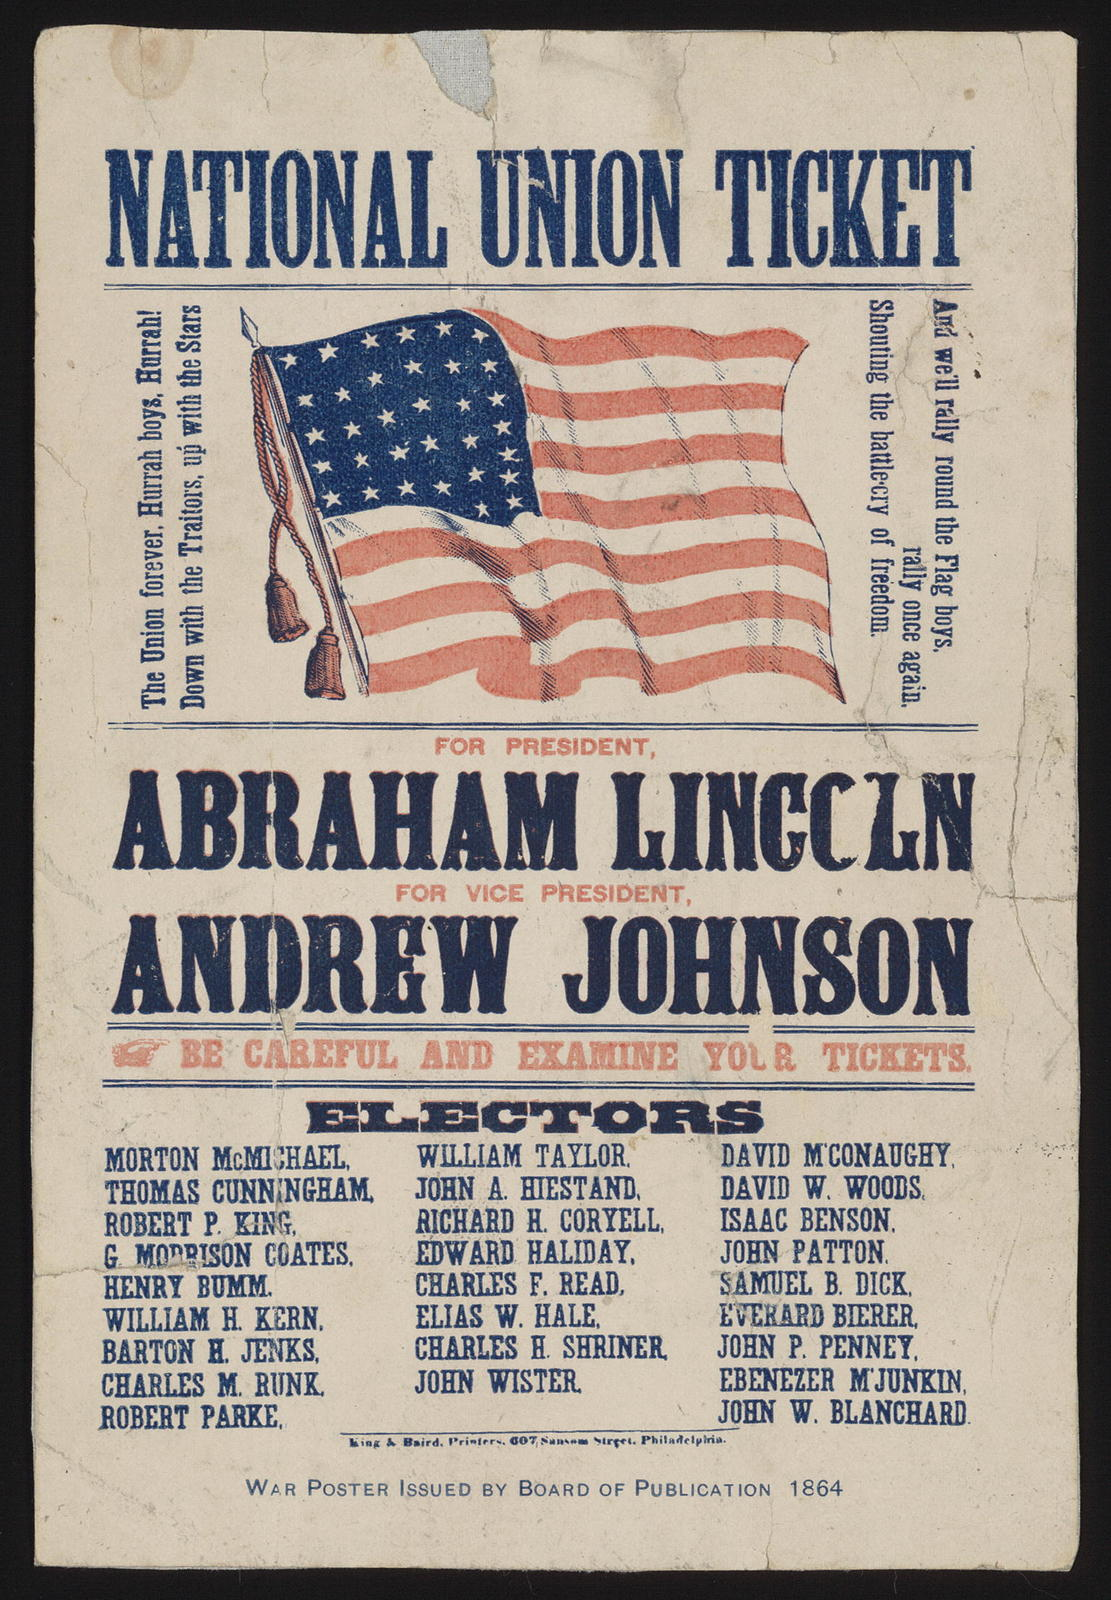 National Union ticket. For President Abraham Lincoln. For Vice President Andrew Johnson. [Campaign ticket]